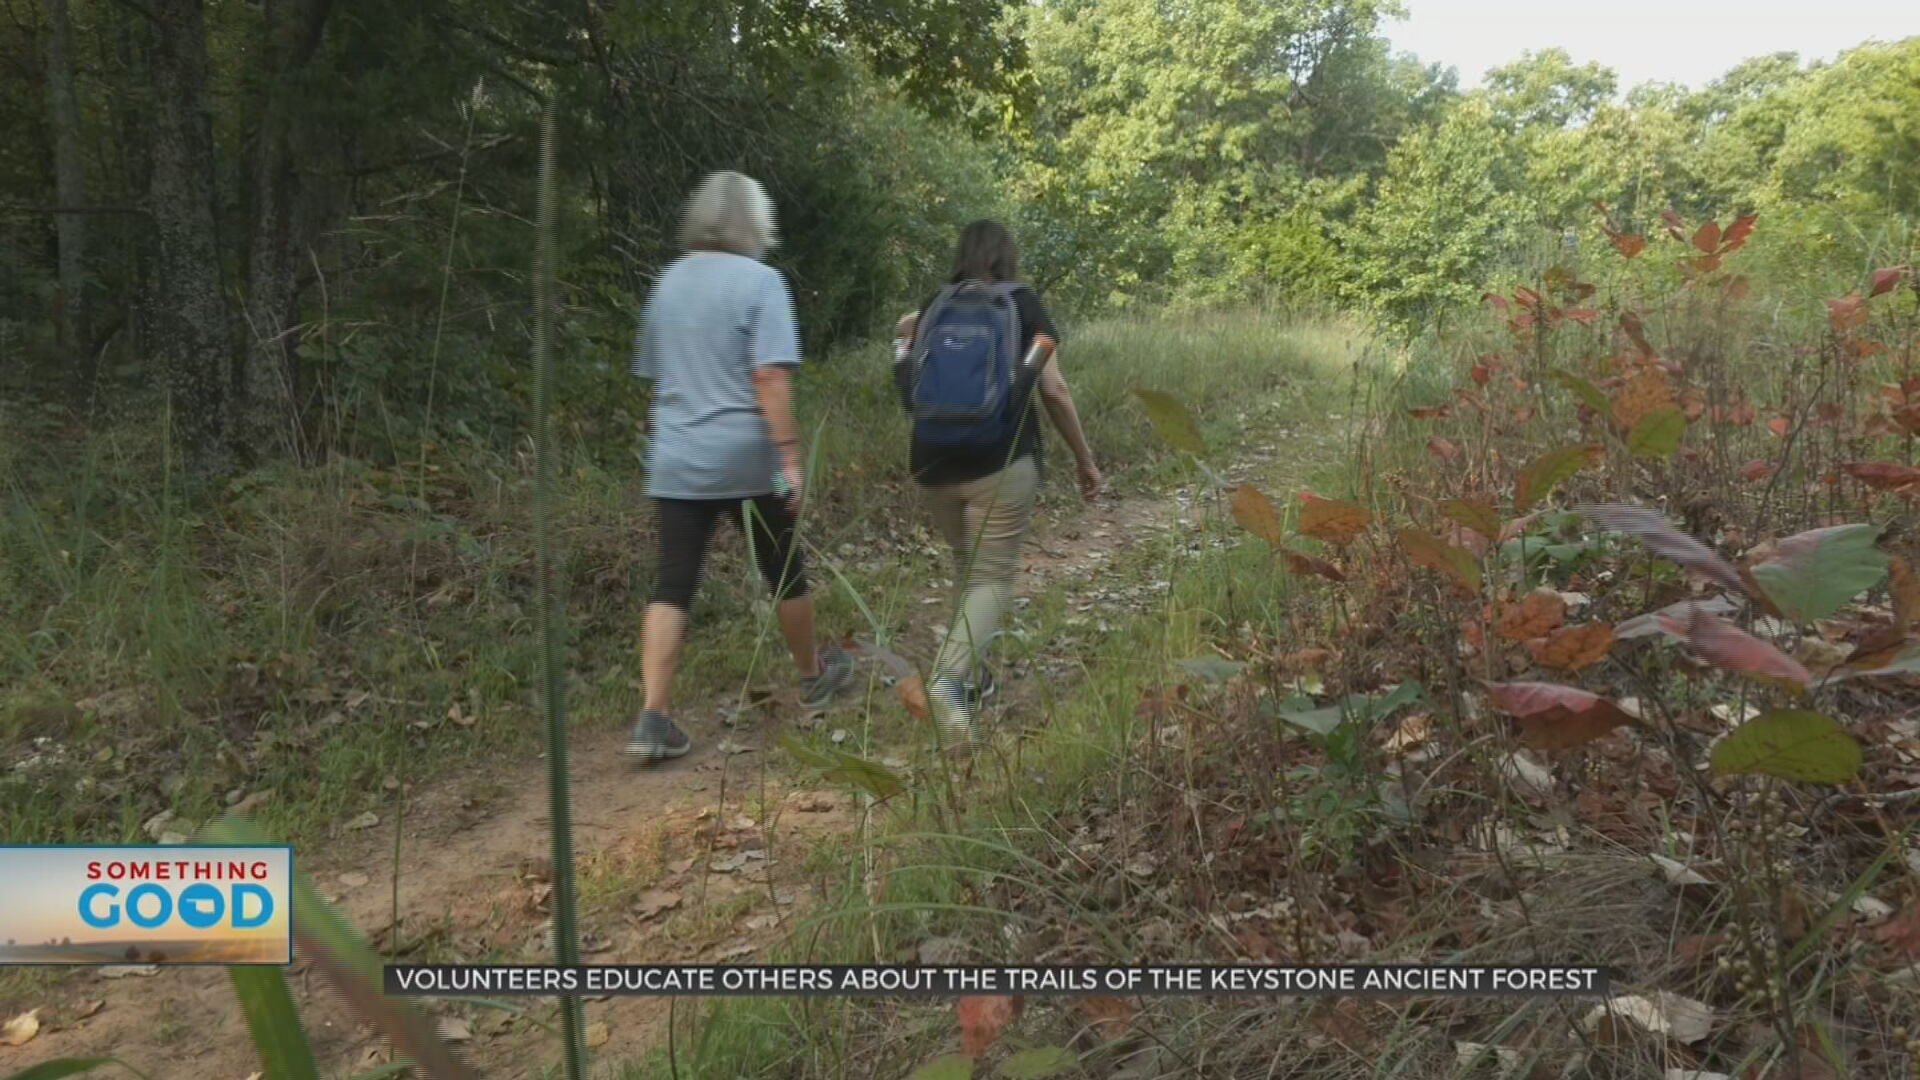 Volunteers At Ancient Forest Trails Help Visitors Step Off Beaten Path